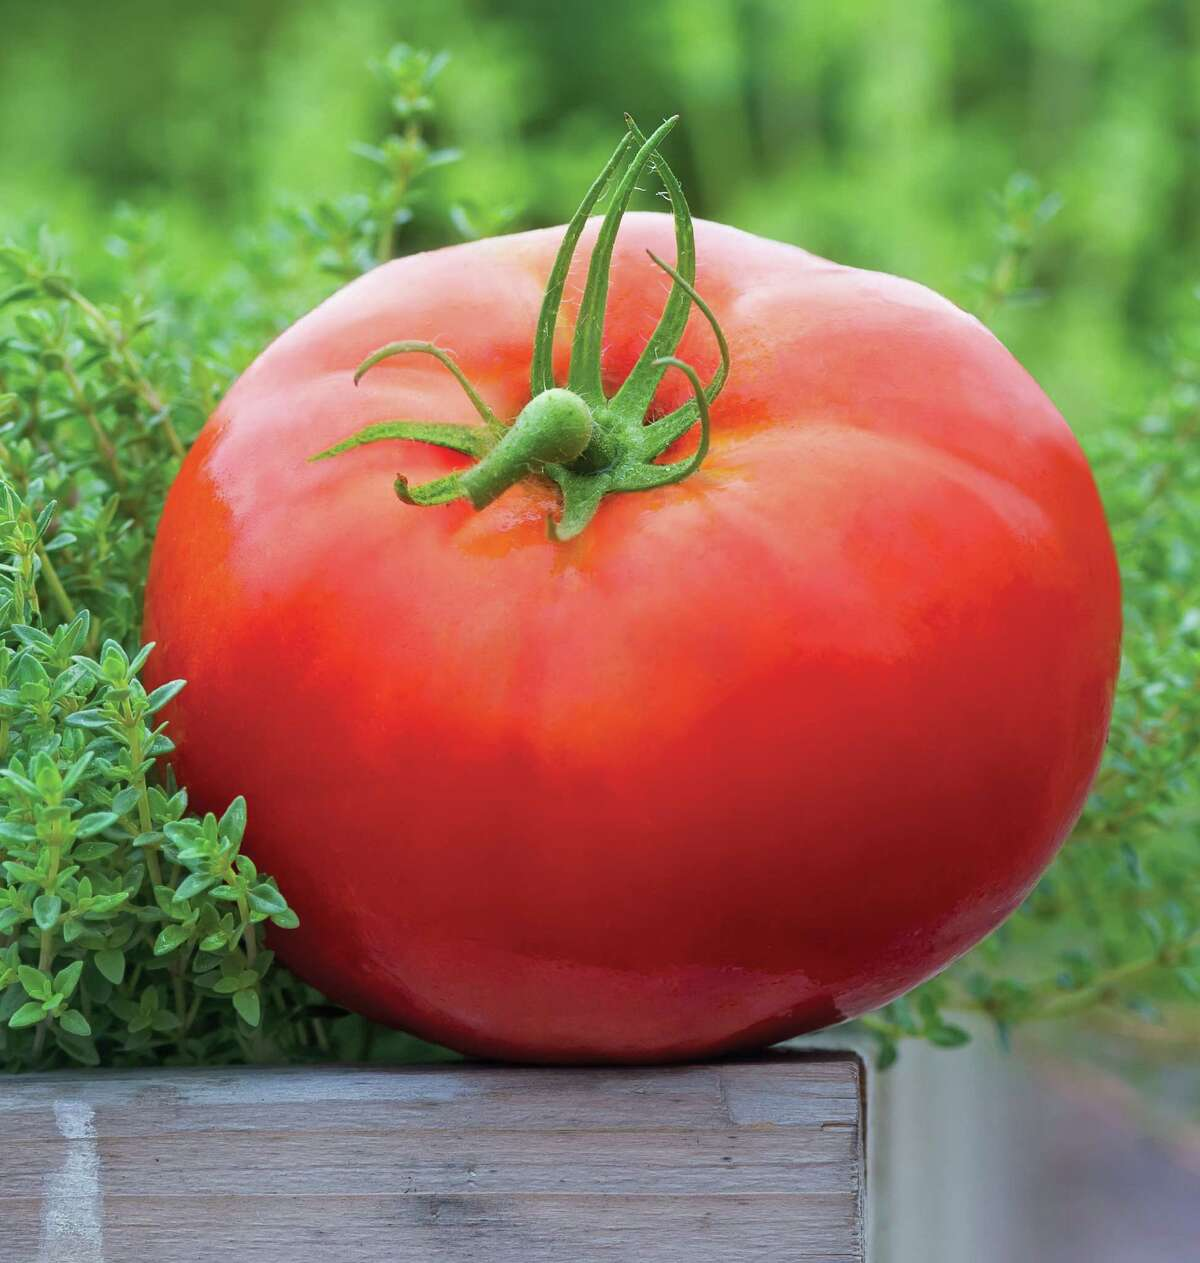 Get some of your daily dose of water from fruits and vegetables. A tomato is 94 percent water.